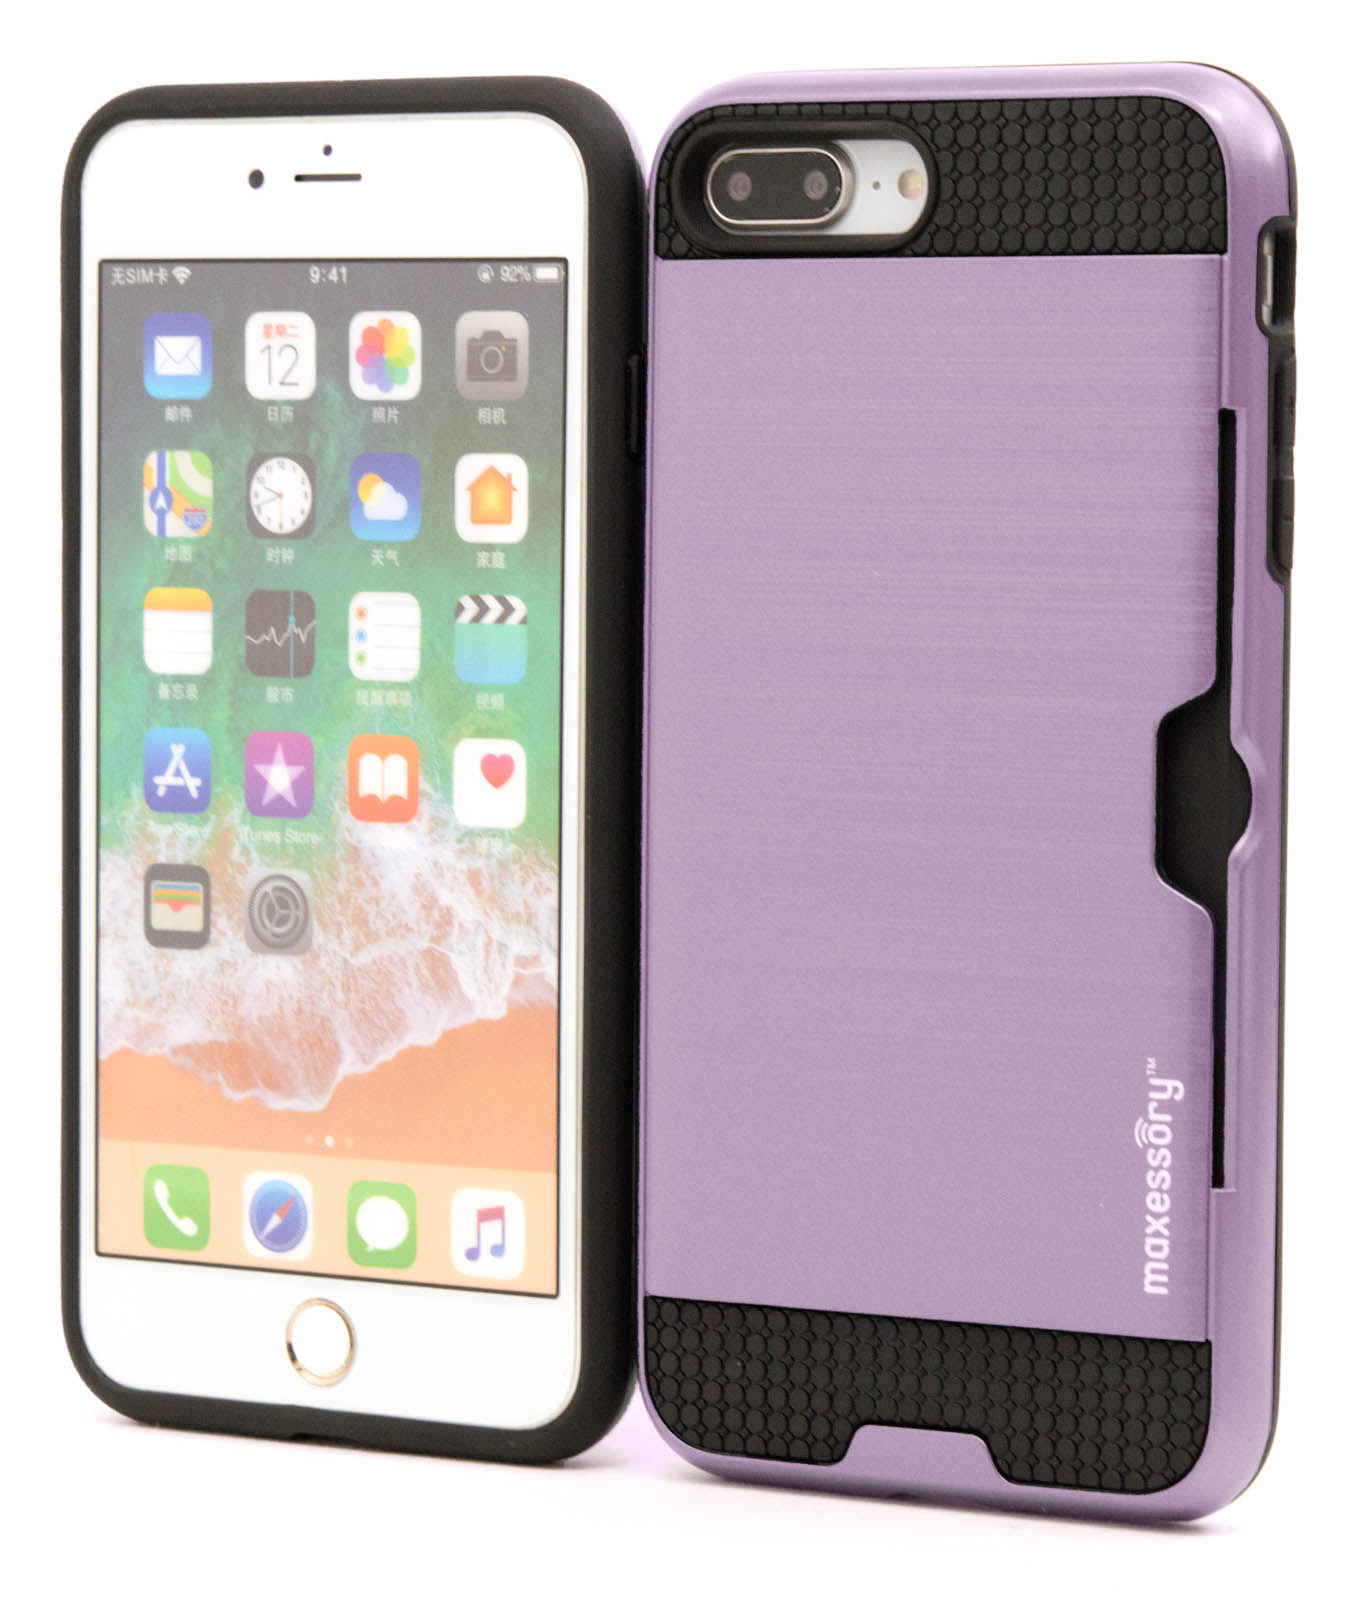 Apple-iPhone-7-Plus-8-Plus-Premium-Hybrid-Textured-Armor-Shell-Cover-Case thumbnail 29